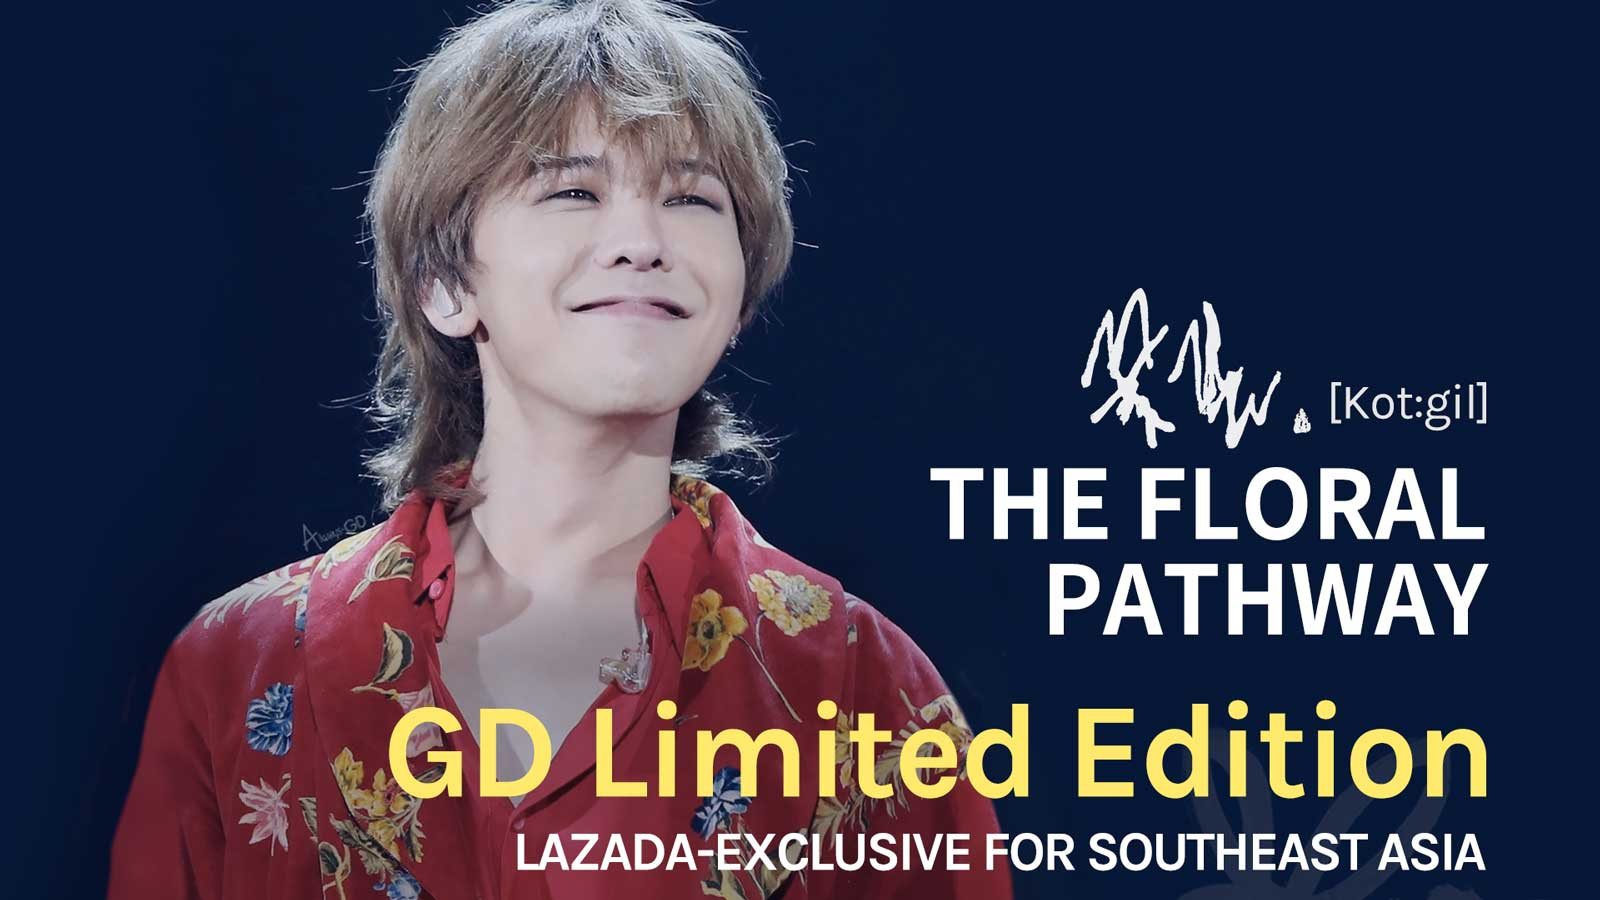 Military-bound Kwon Ji Yong (GD) Bids Farewell to Southeast Asia Fans with Floral Parting Gift on Lazada